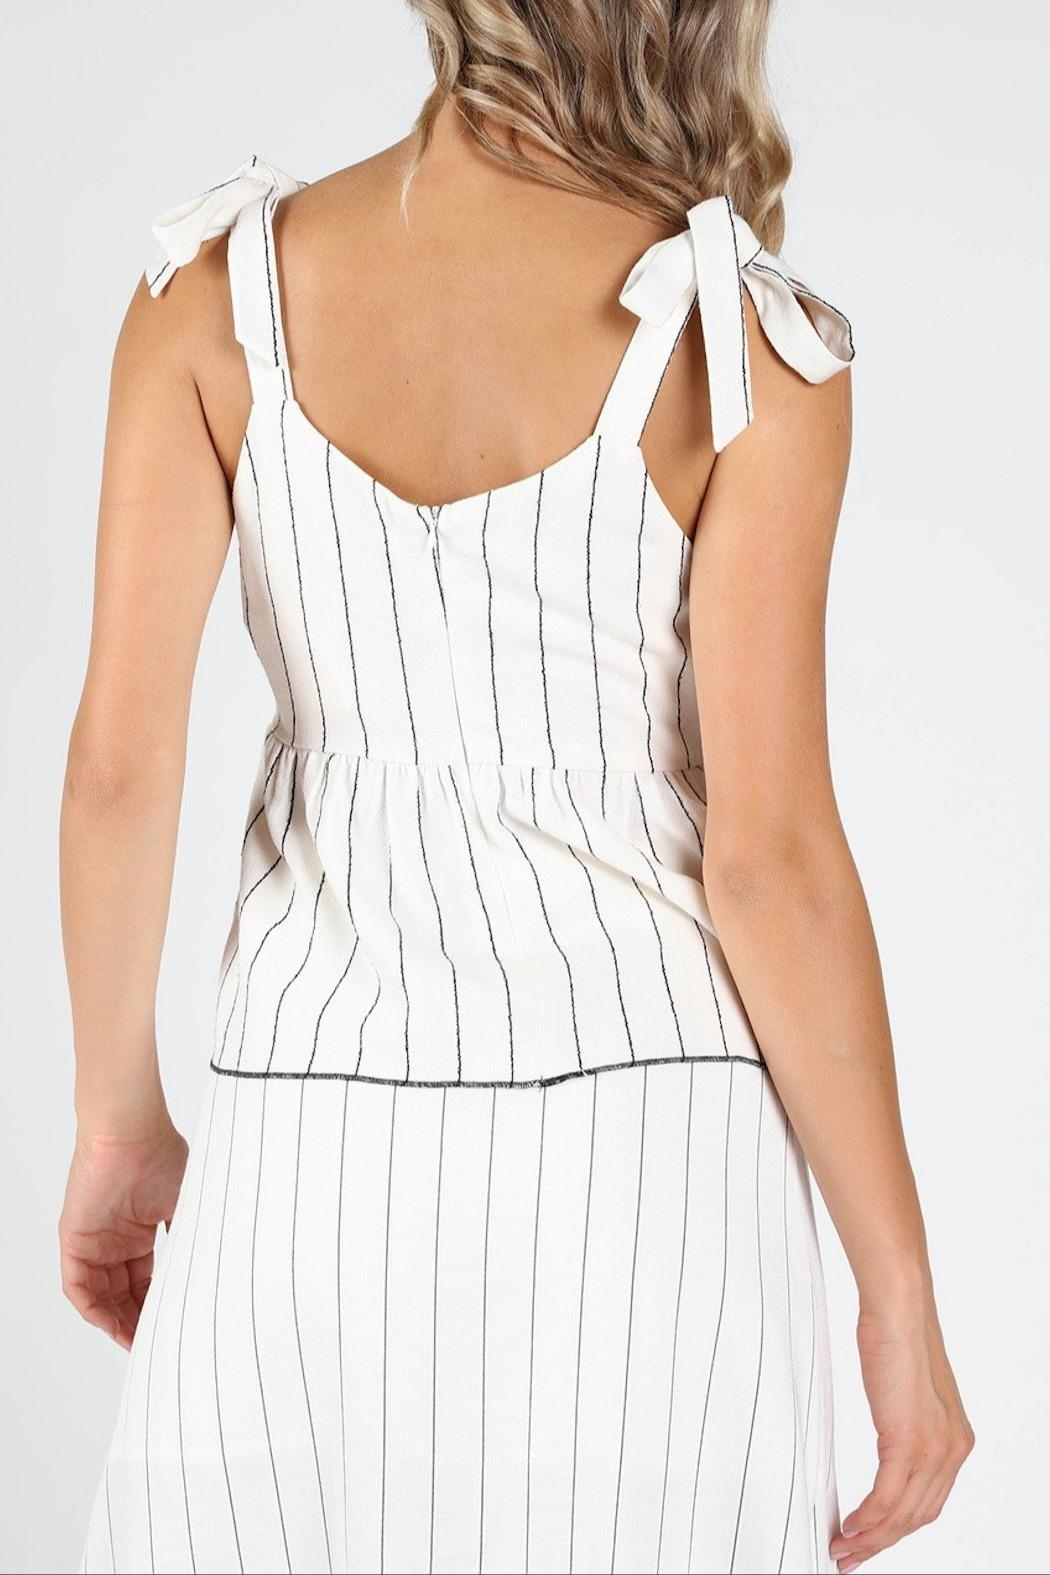 Honey Punch Play-Fair White-Stripe Top - Side Cropped Image